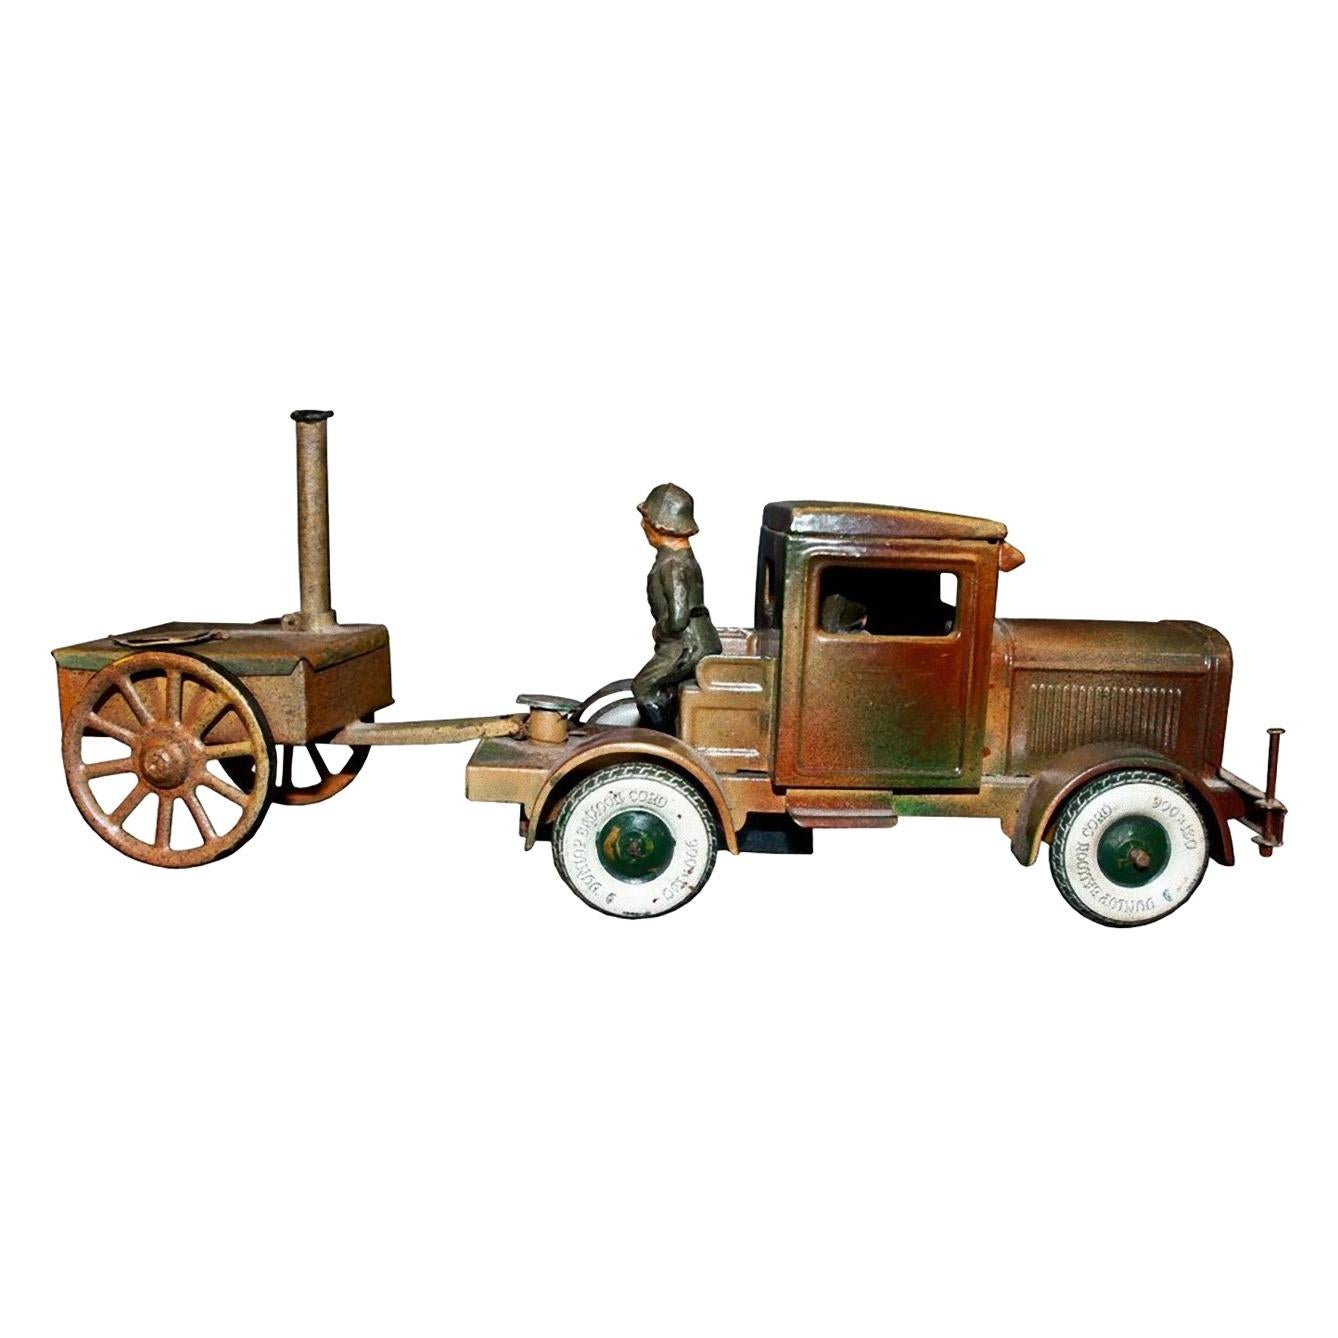 Vintage Toy, Military Toy Truck and Trailer